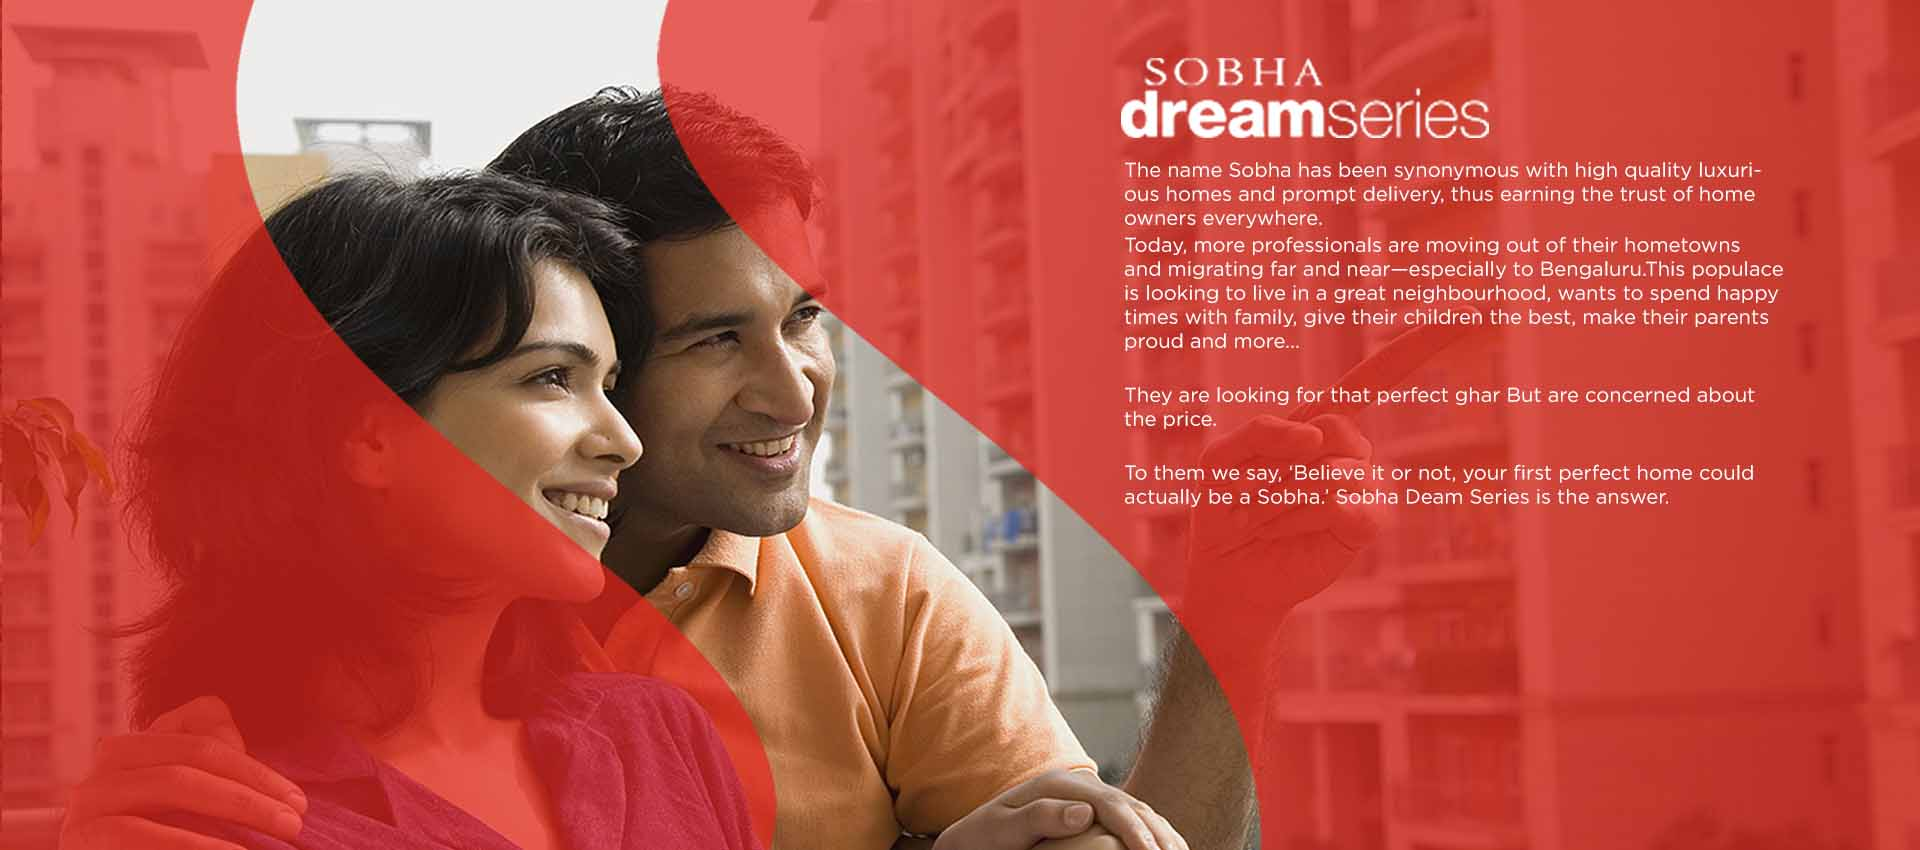 Sobha Dream Series